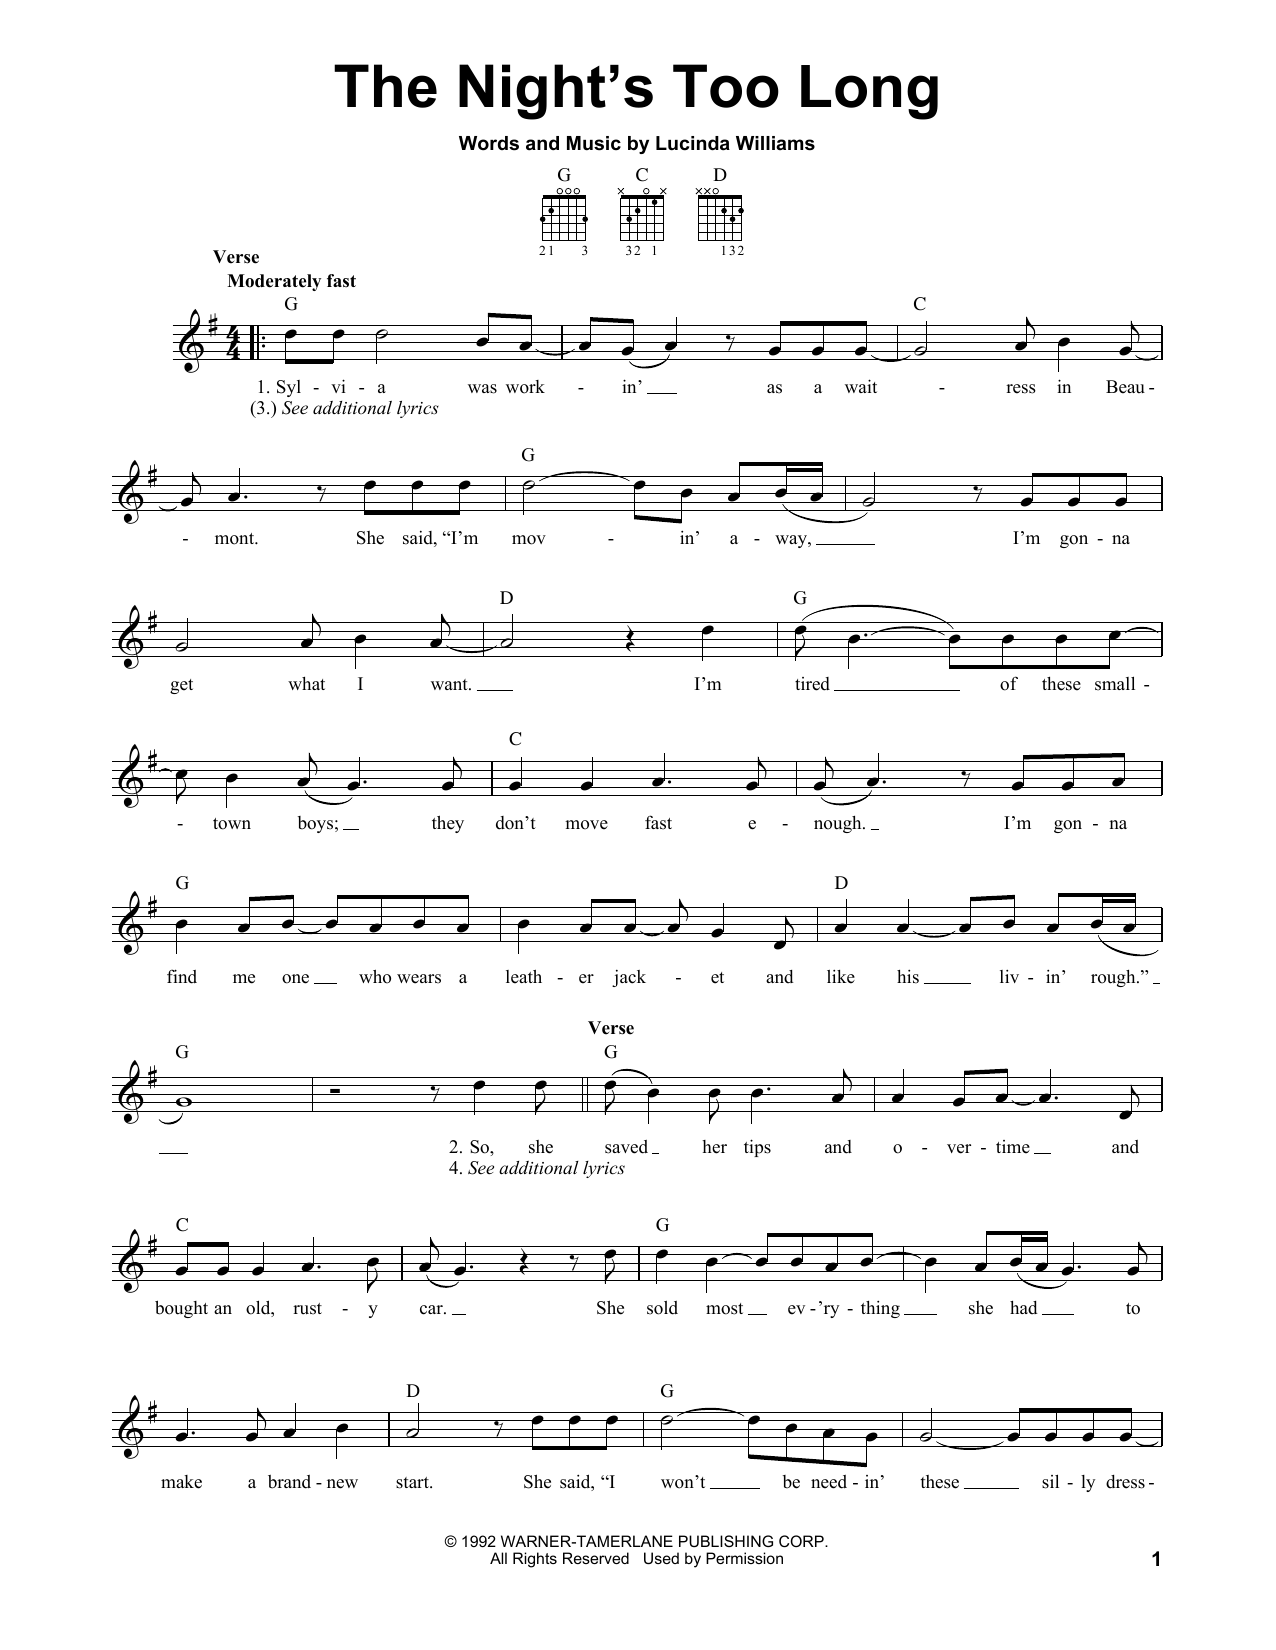 Lucinda Williams The Night's Too Long sheet music notes and chords. Download Printable PDF.